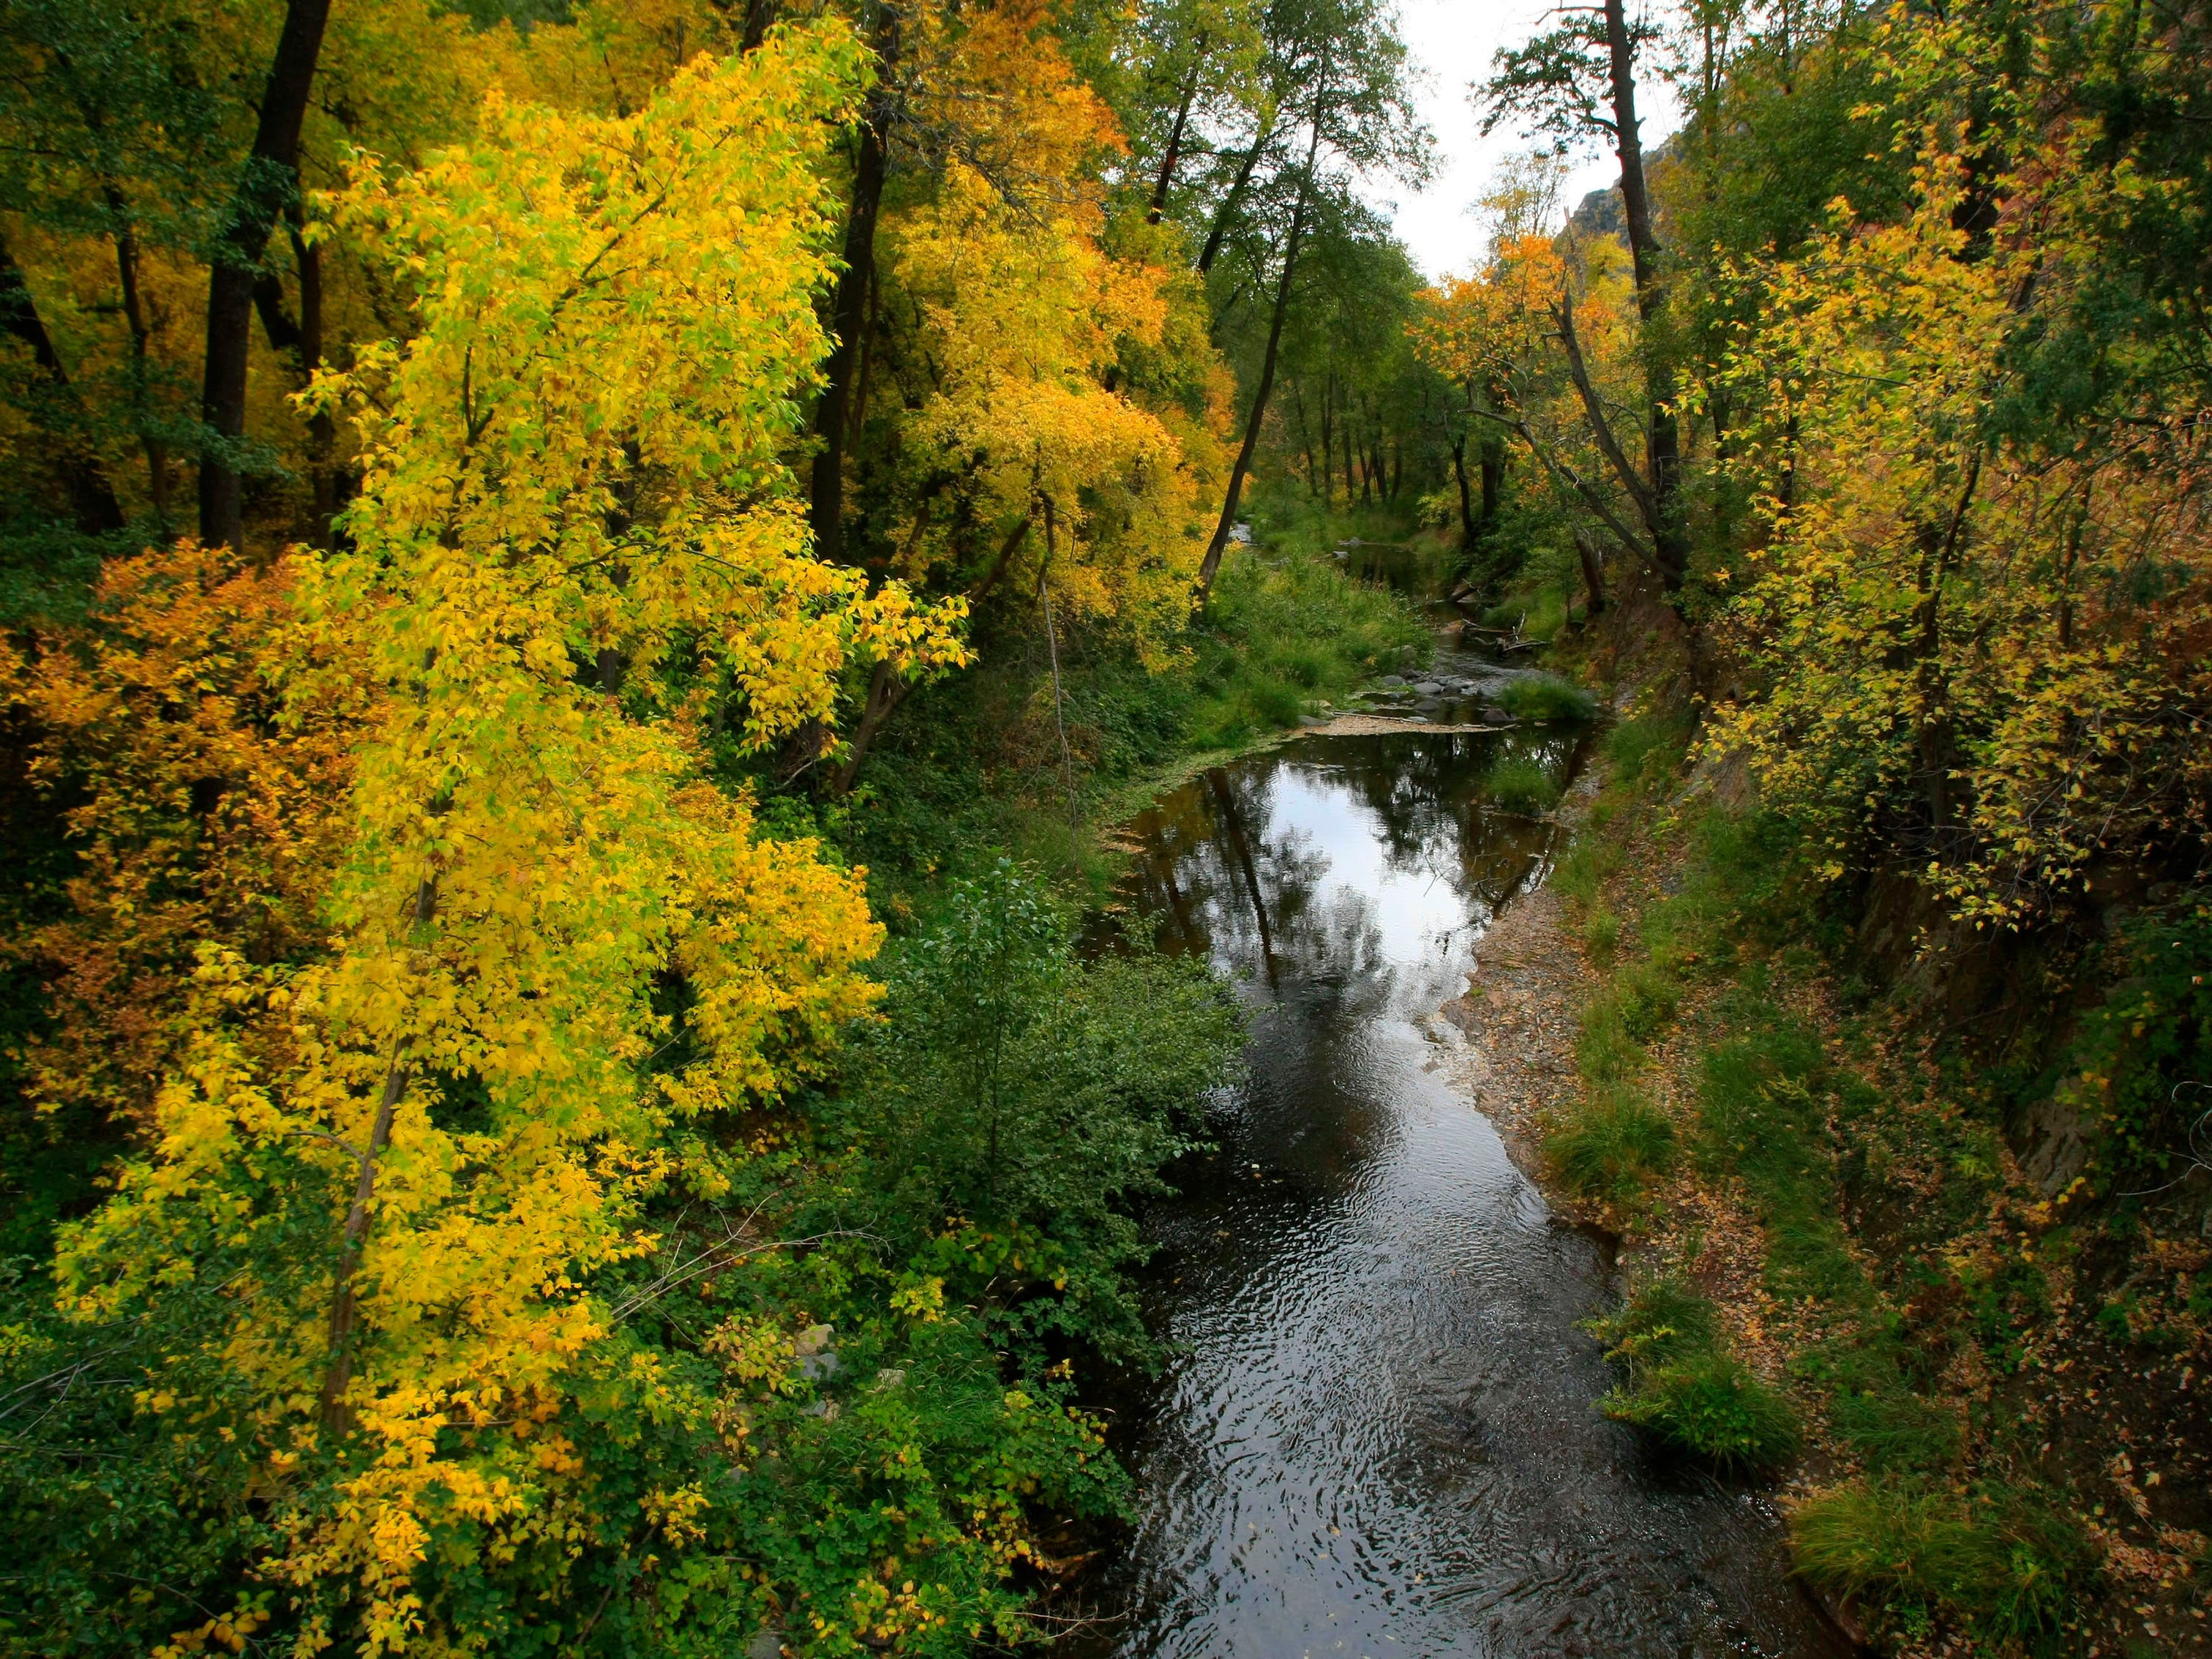 Autumn colors sweep through Oak Creek Canyon on the West Fork Trail north of Sedona.